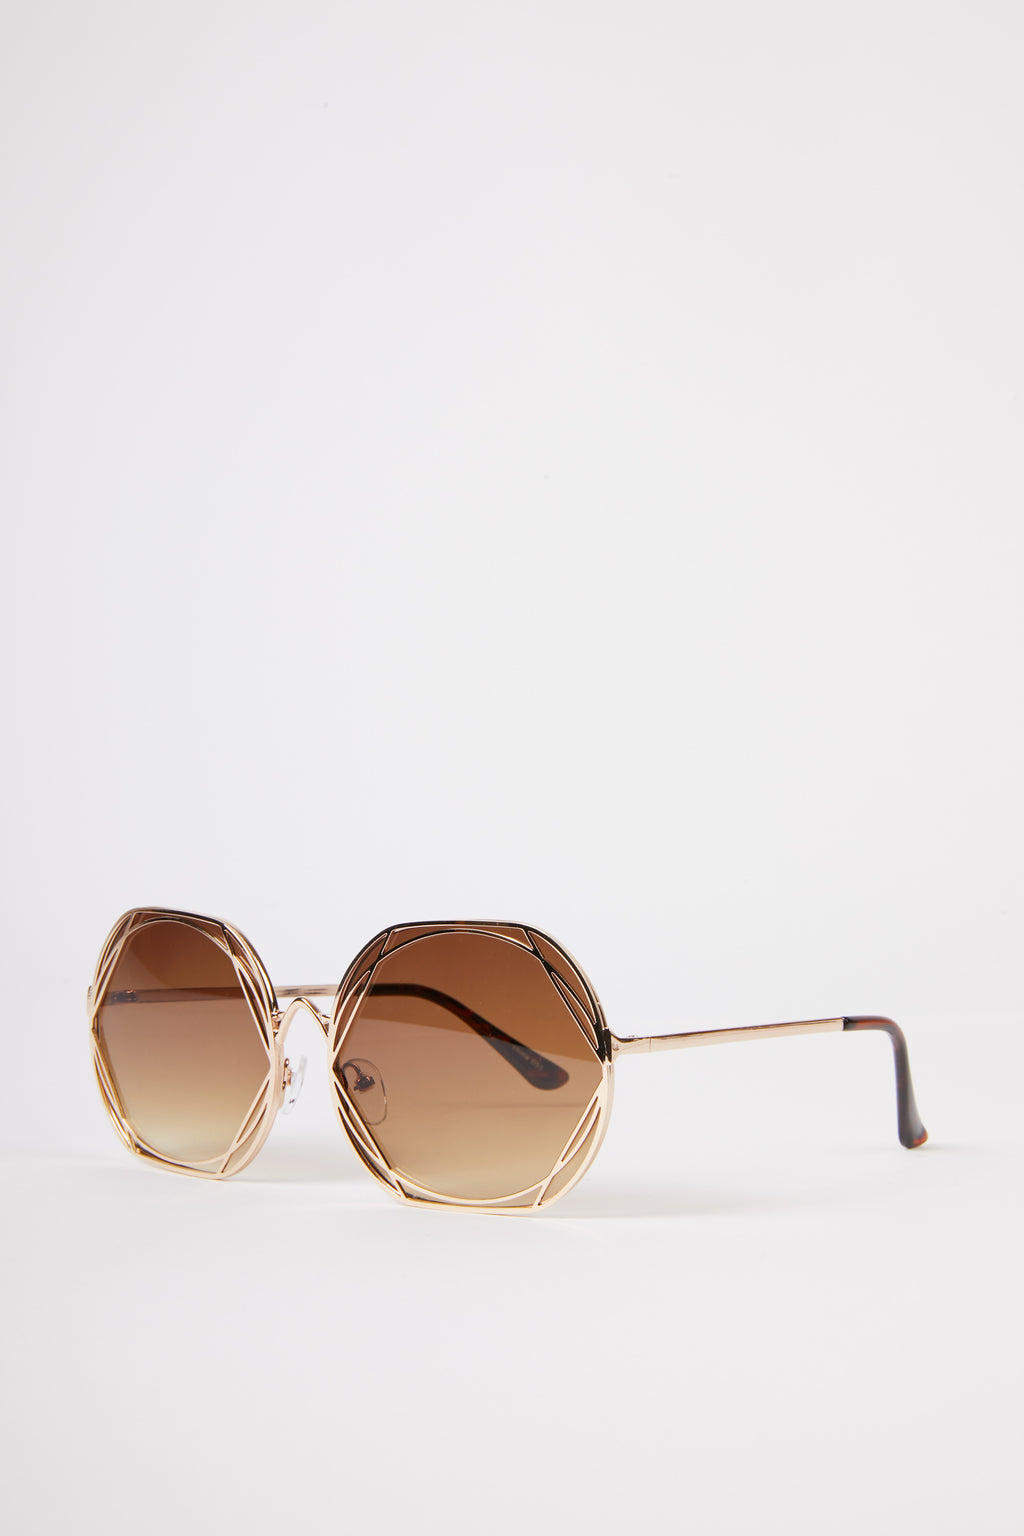 Round Geometric Sunglasses